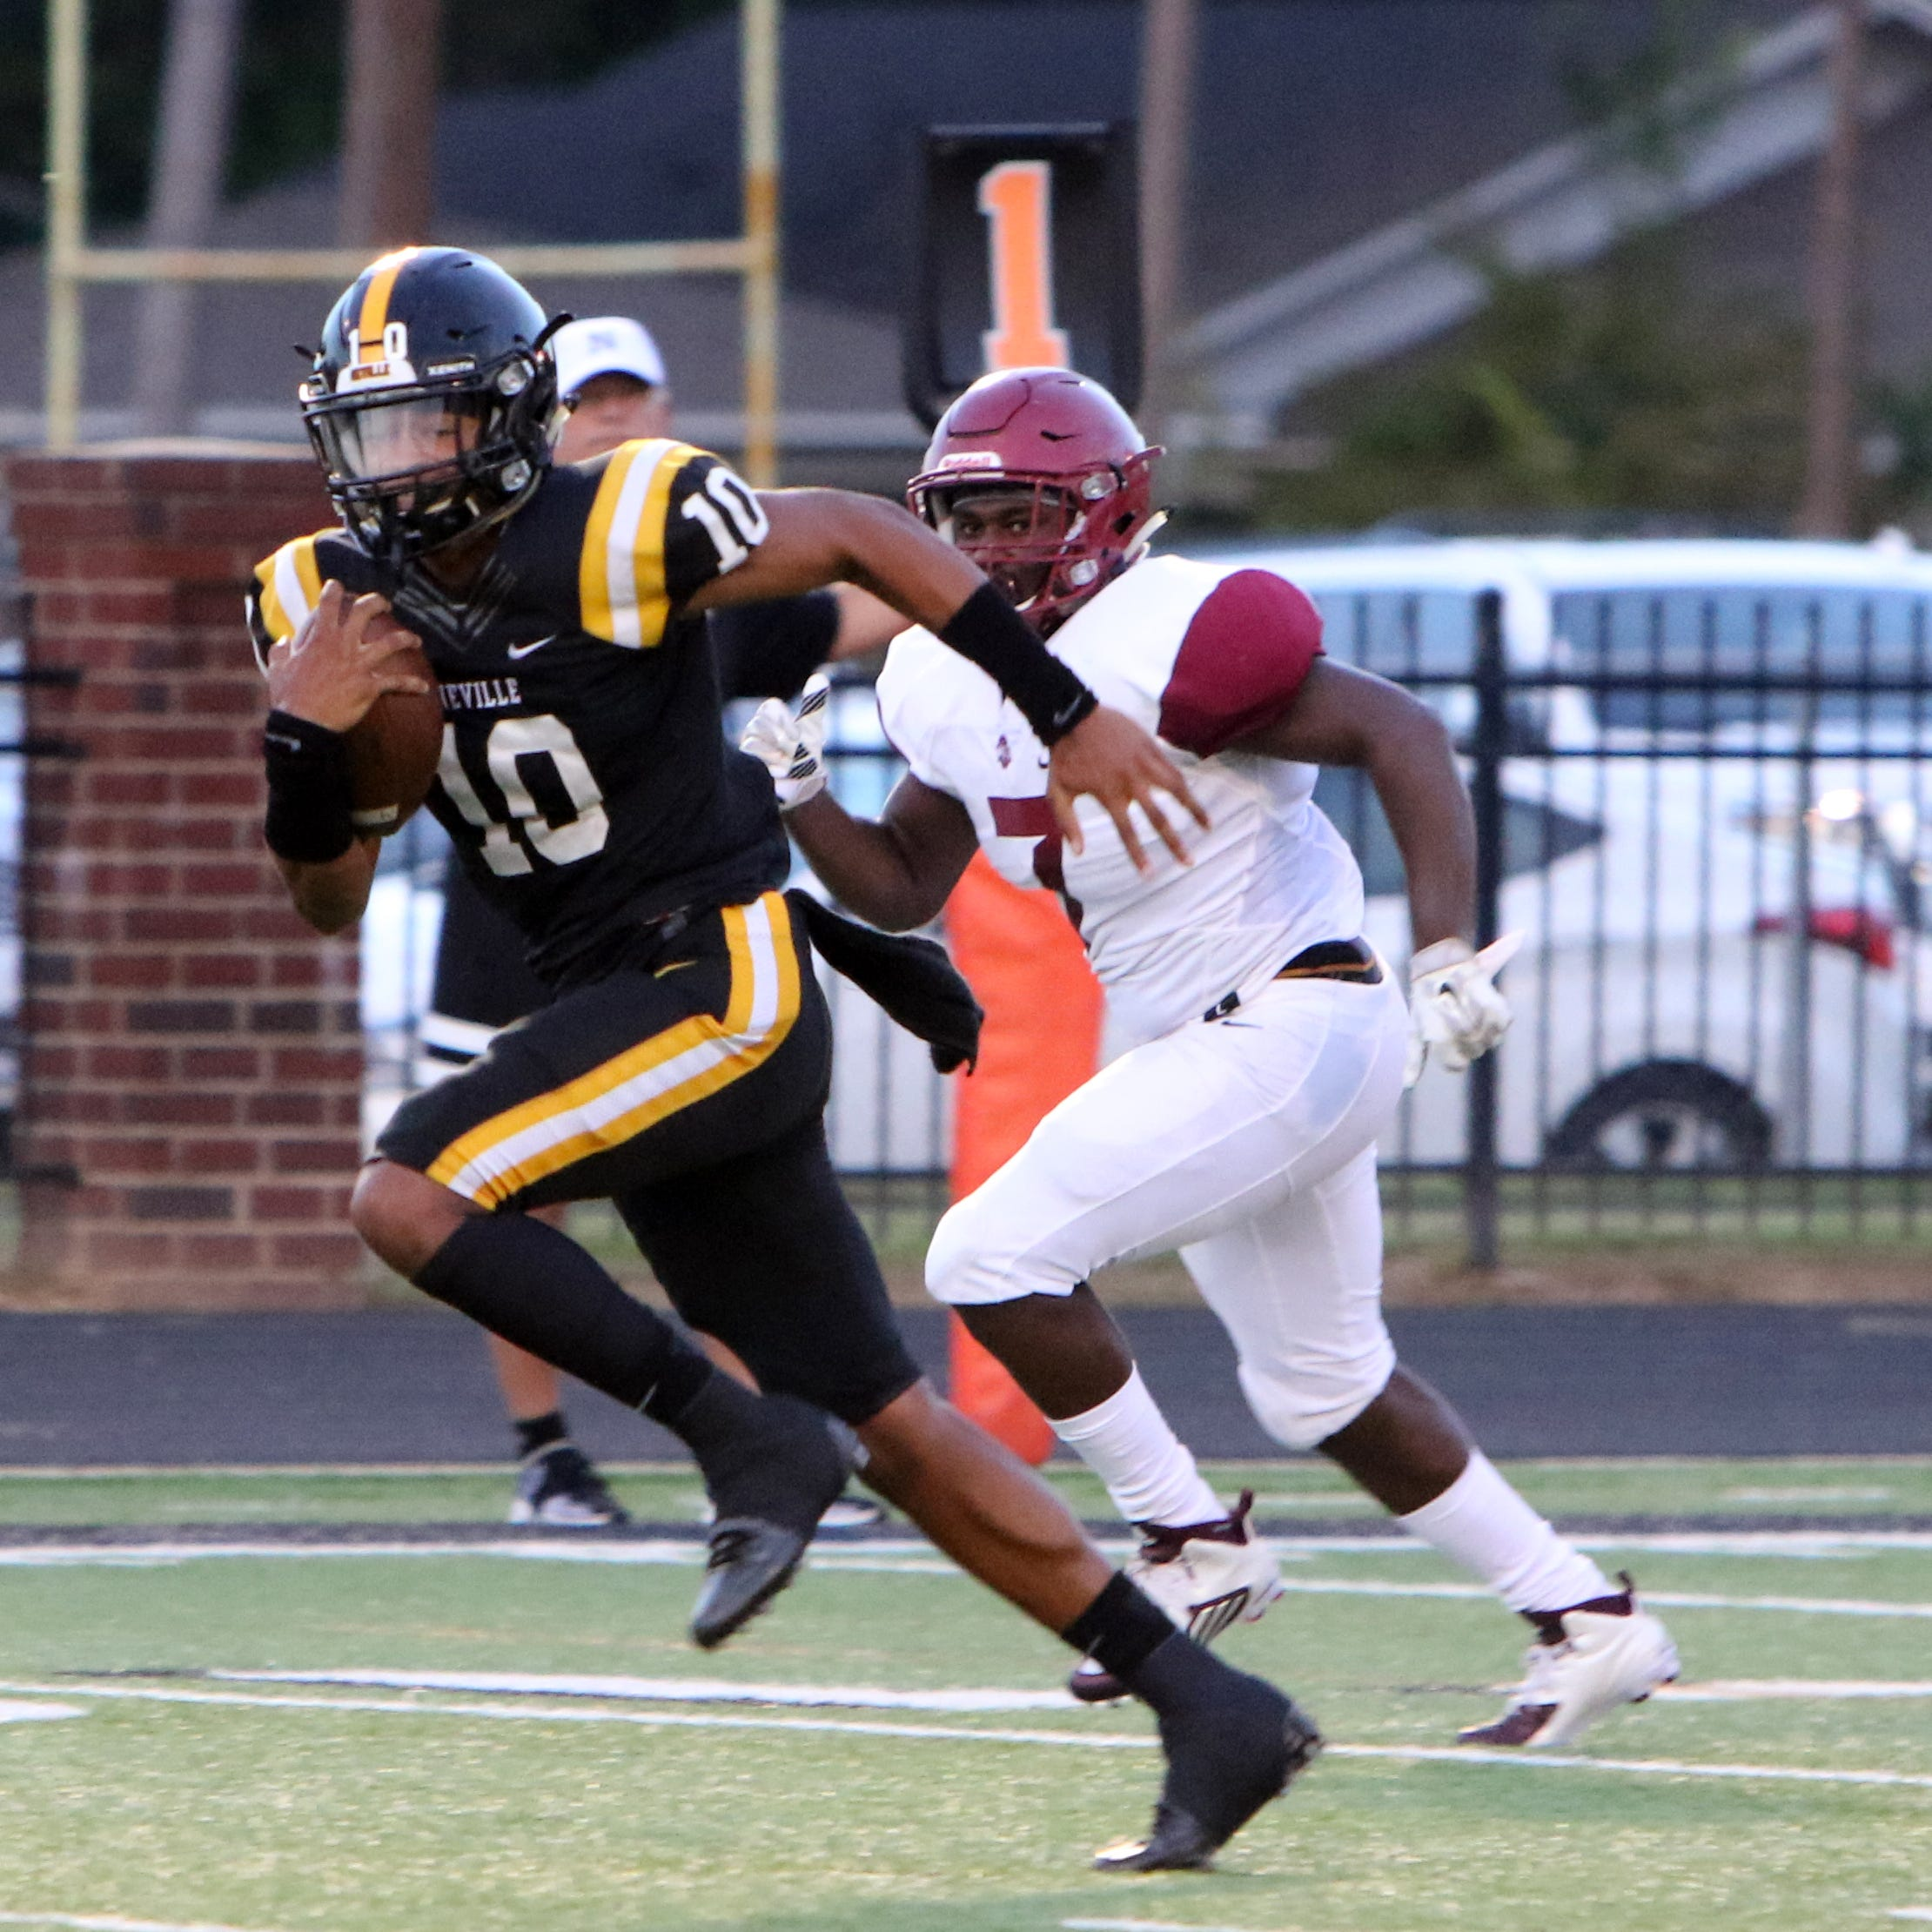 The Ouachita Lions visited Bill Ruple Stadium to take on the Neville Tigers in Monroe on Friday, September 14.